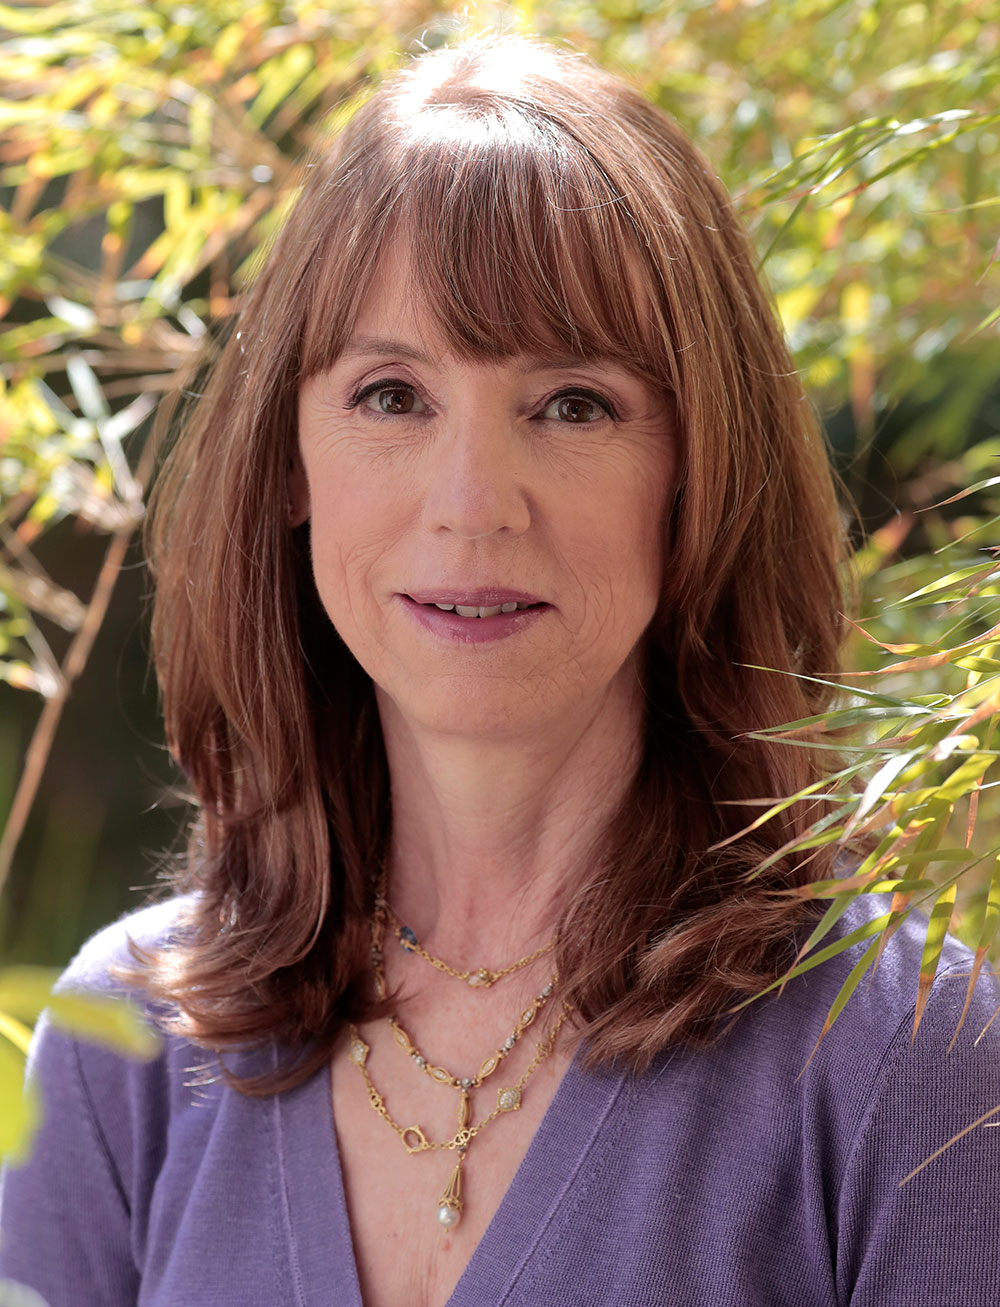 Book Q&As with Deborah Kalb: Q&A with Lisa See